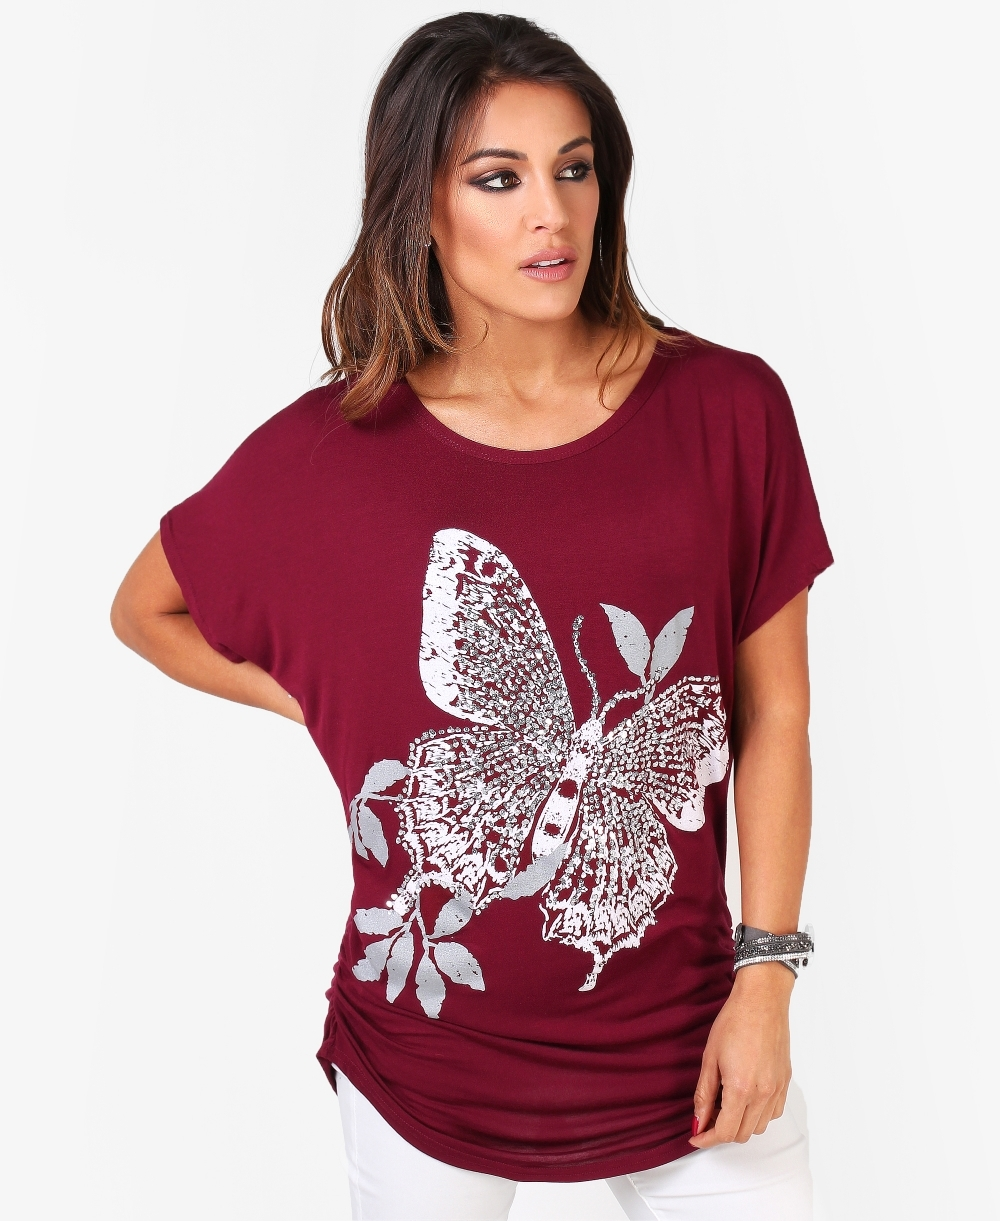 6b921e80 Ladies Printed T Shirts Uk